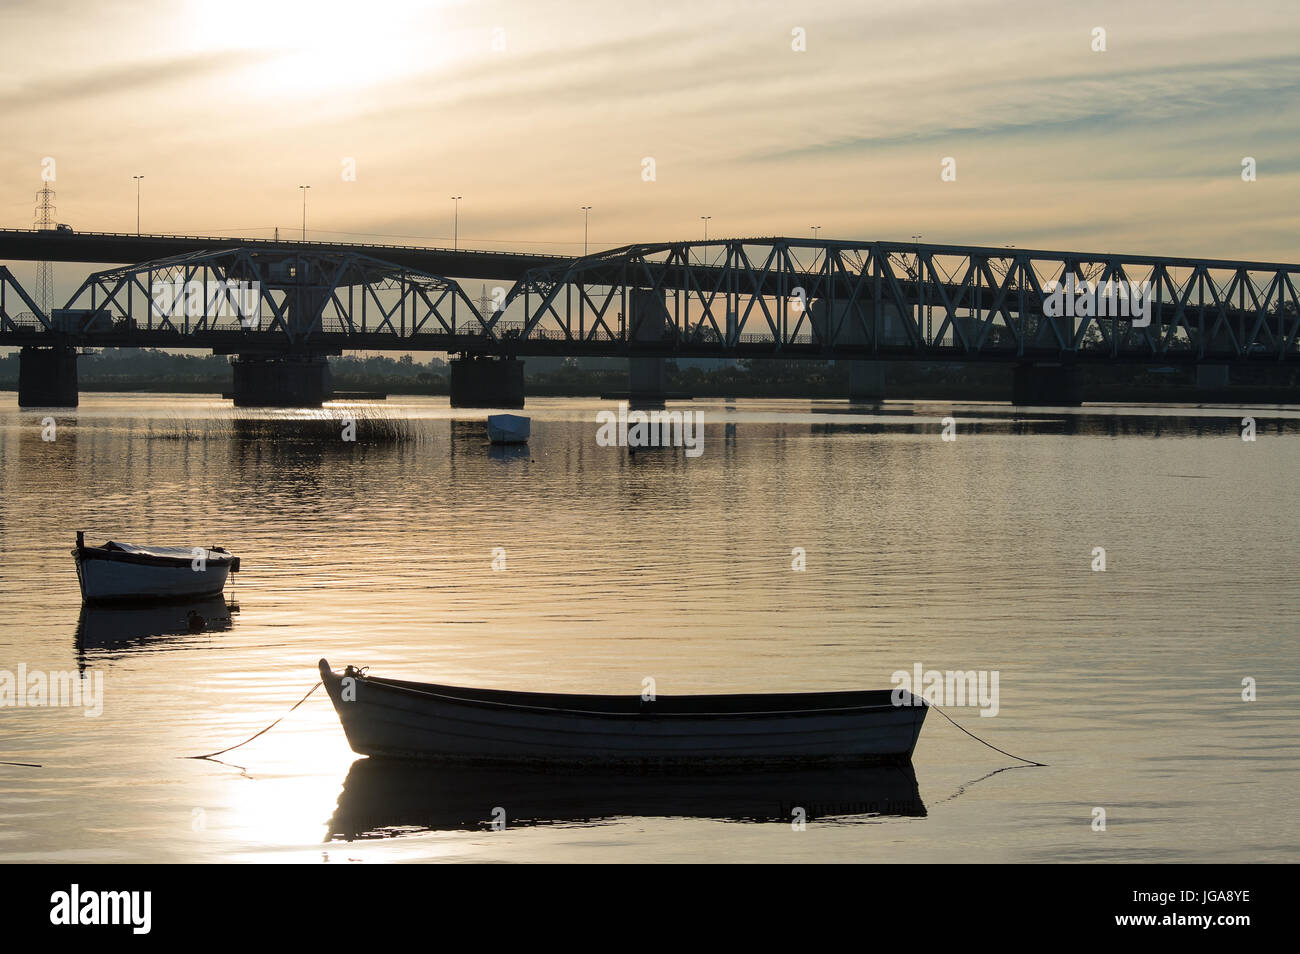 silhouette of the bridge and boats over the Santa Lucia river at sunset in Uruguay Stock Photo